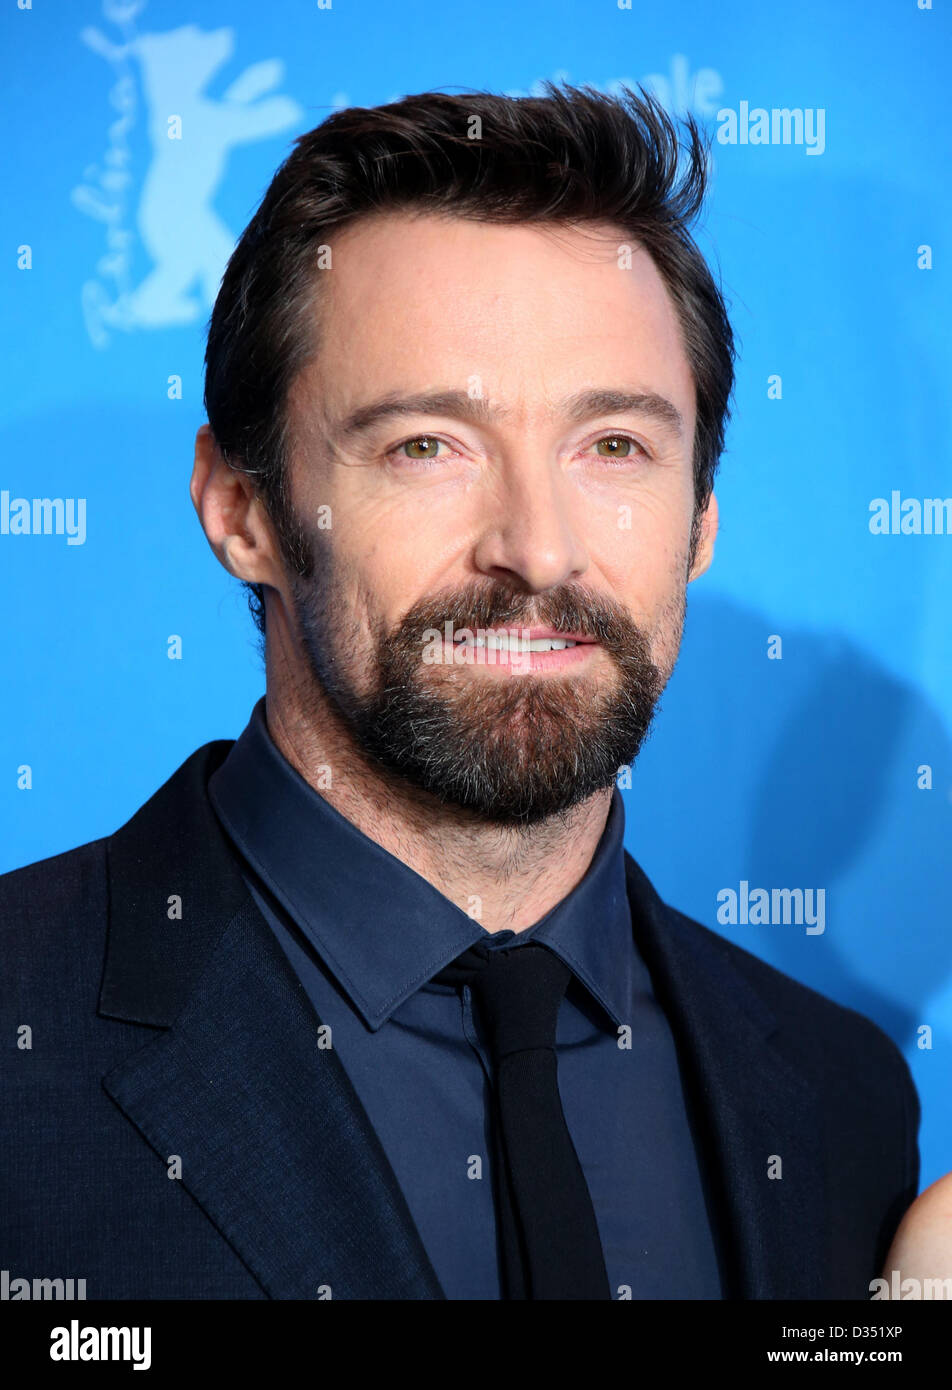 Actor Hugh Jackman poses at the photocall of 'Les Miserables' during the 63rd annual Berlin International - Stock Image